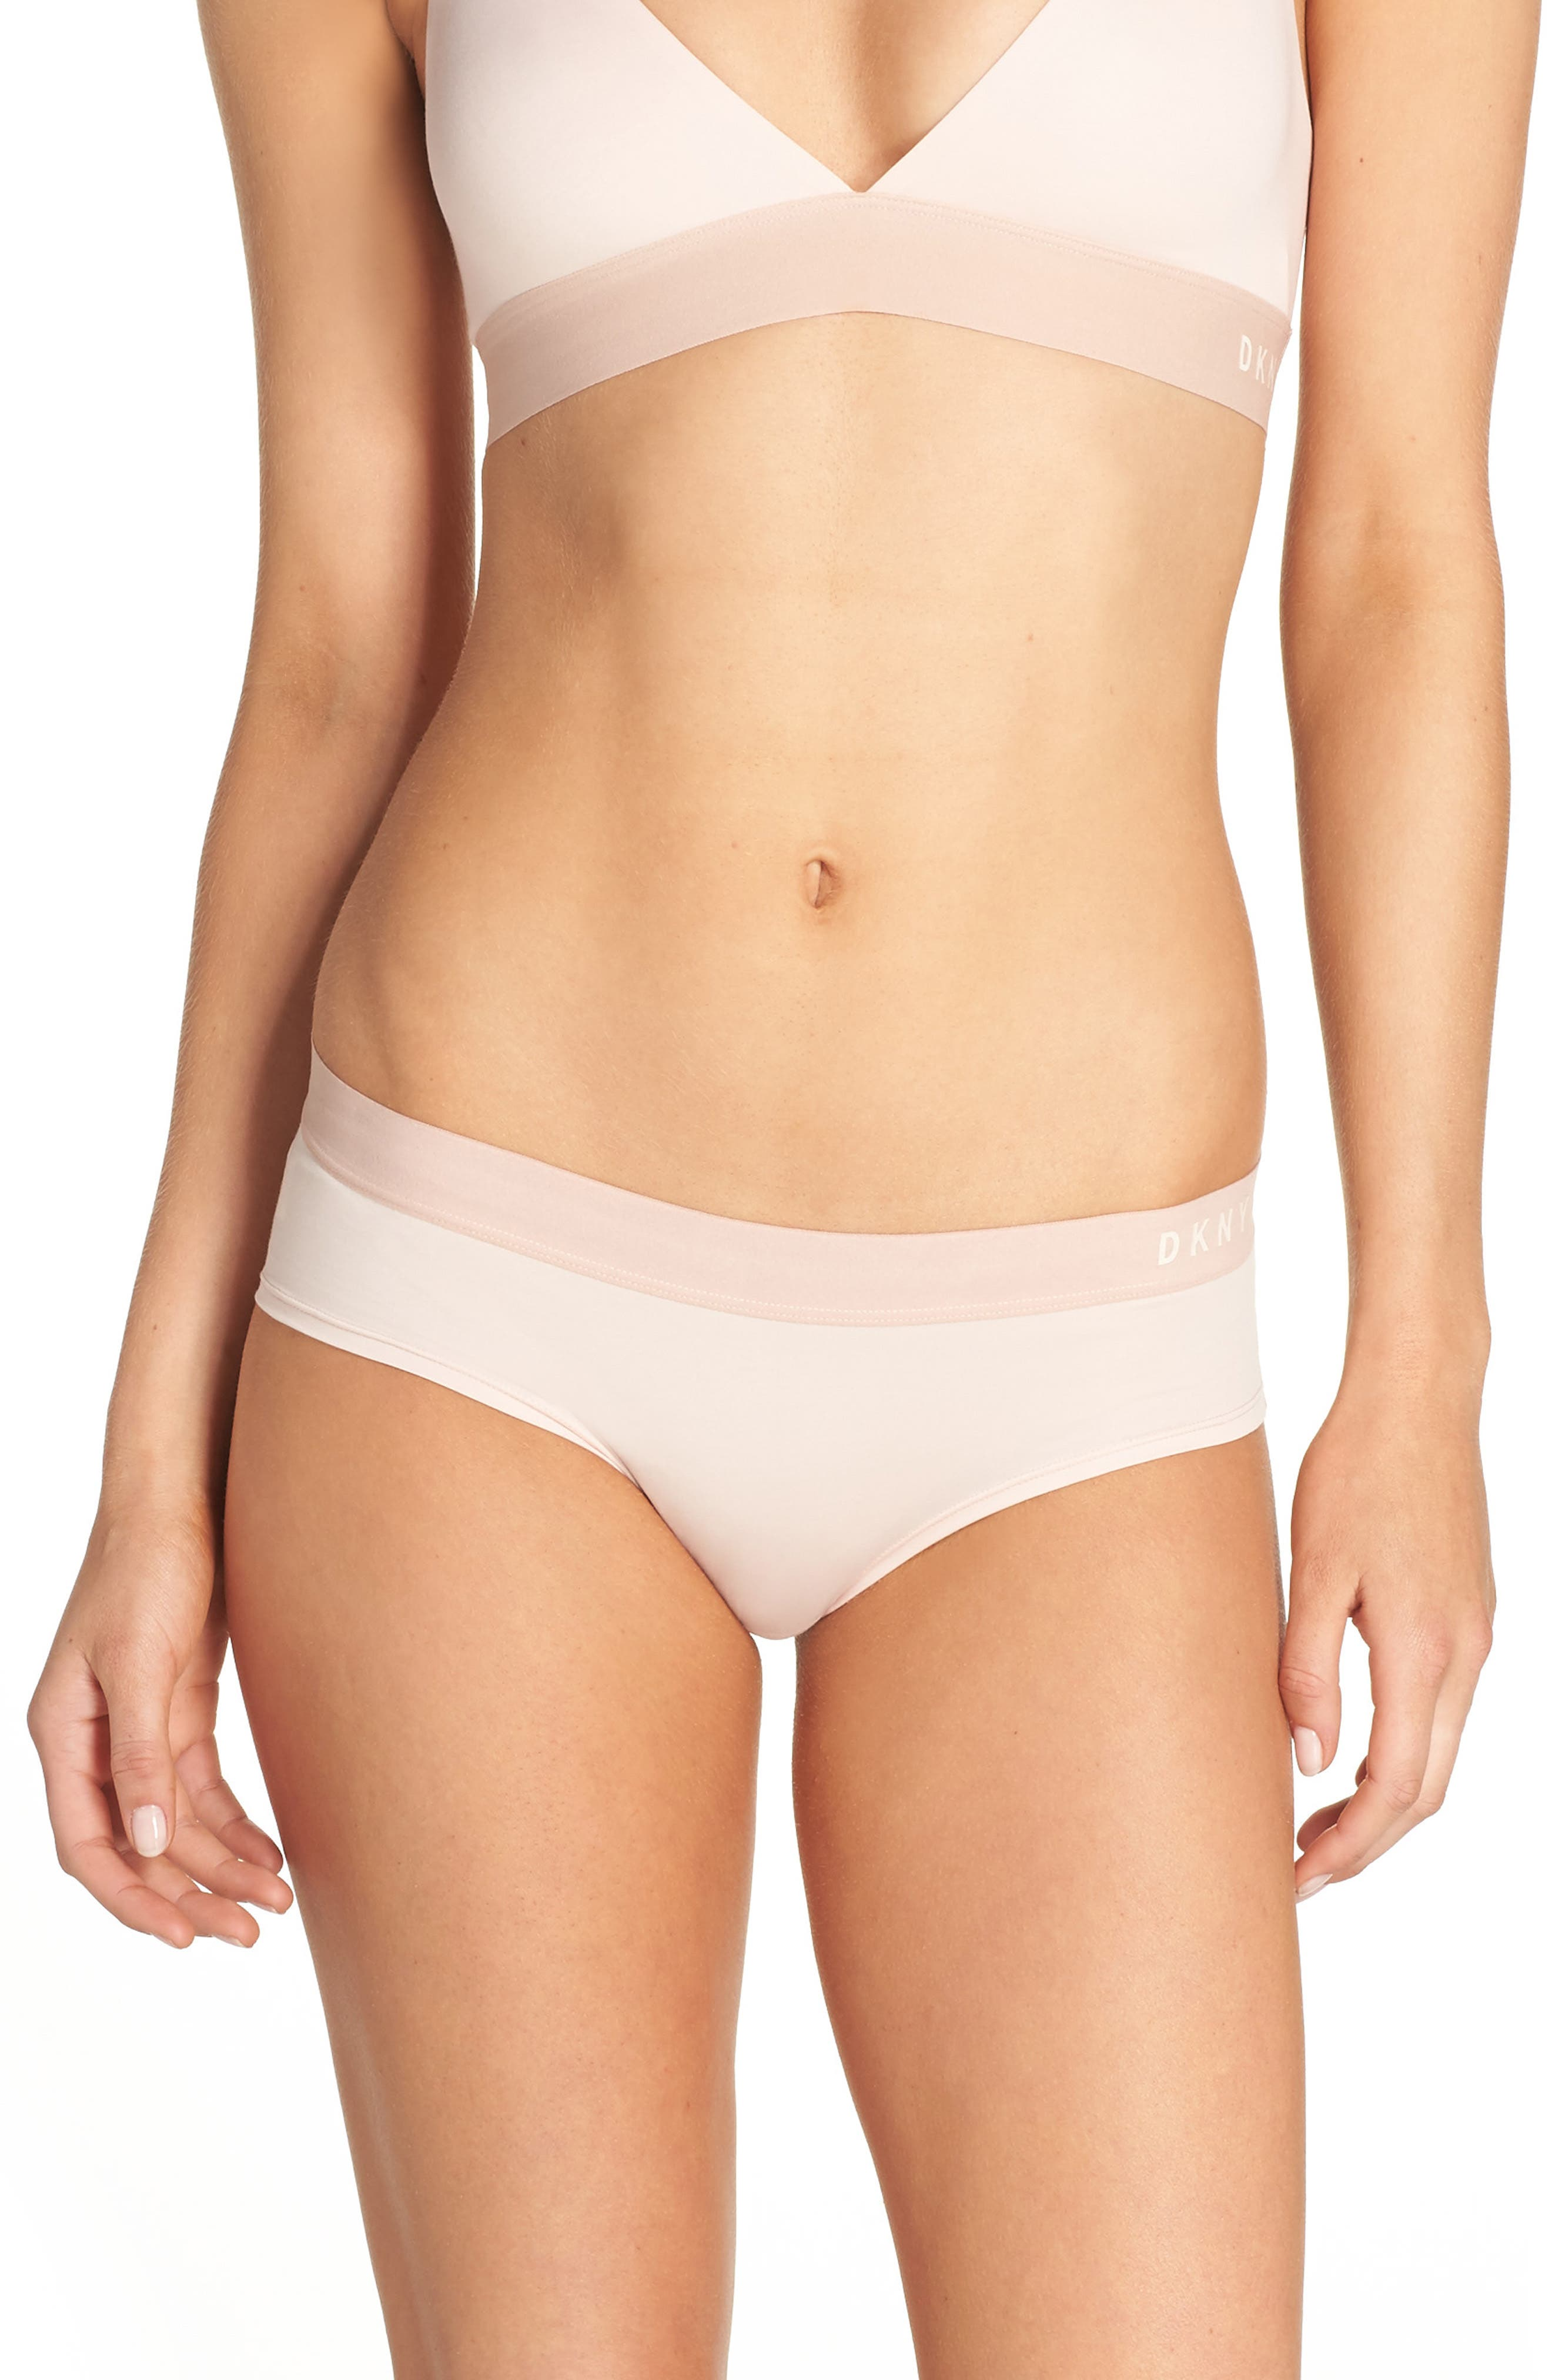 DKNY Hipster Panties (3 for $30)